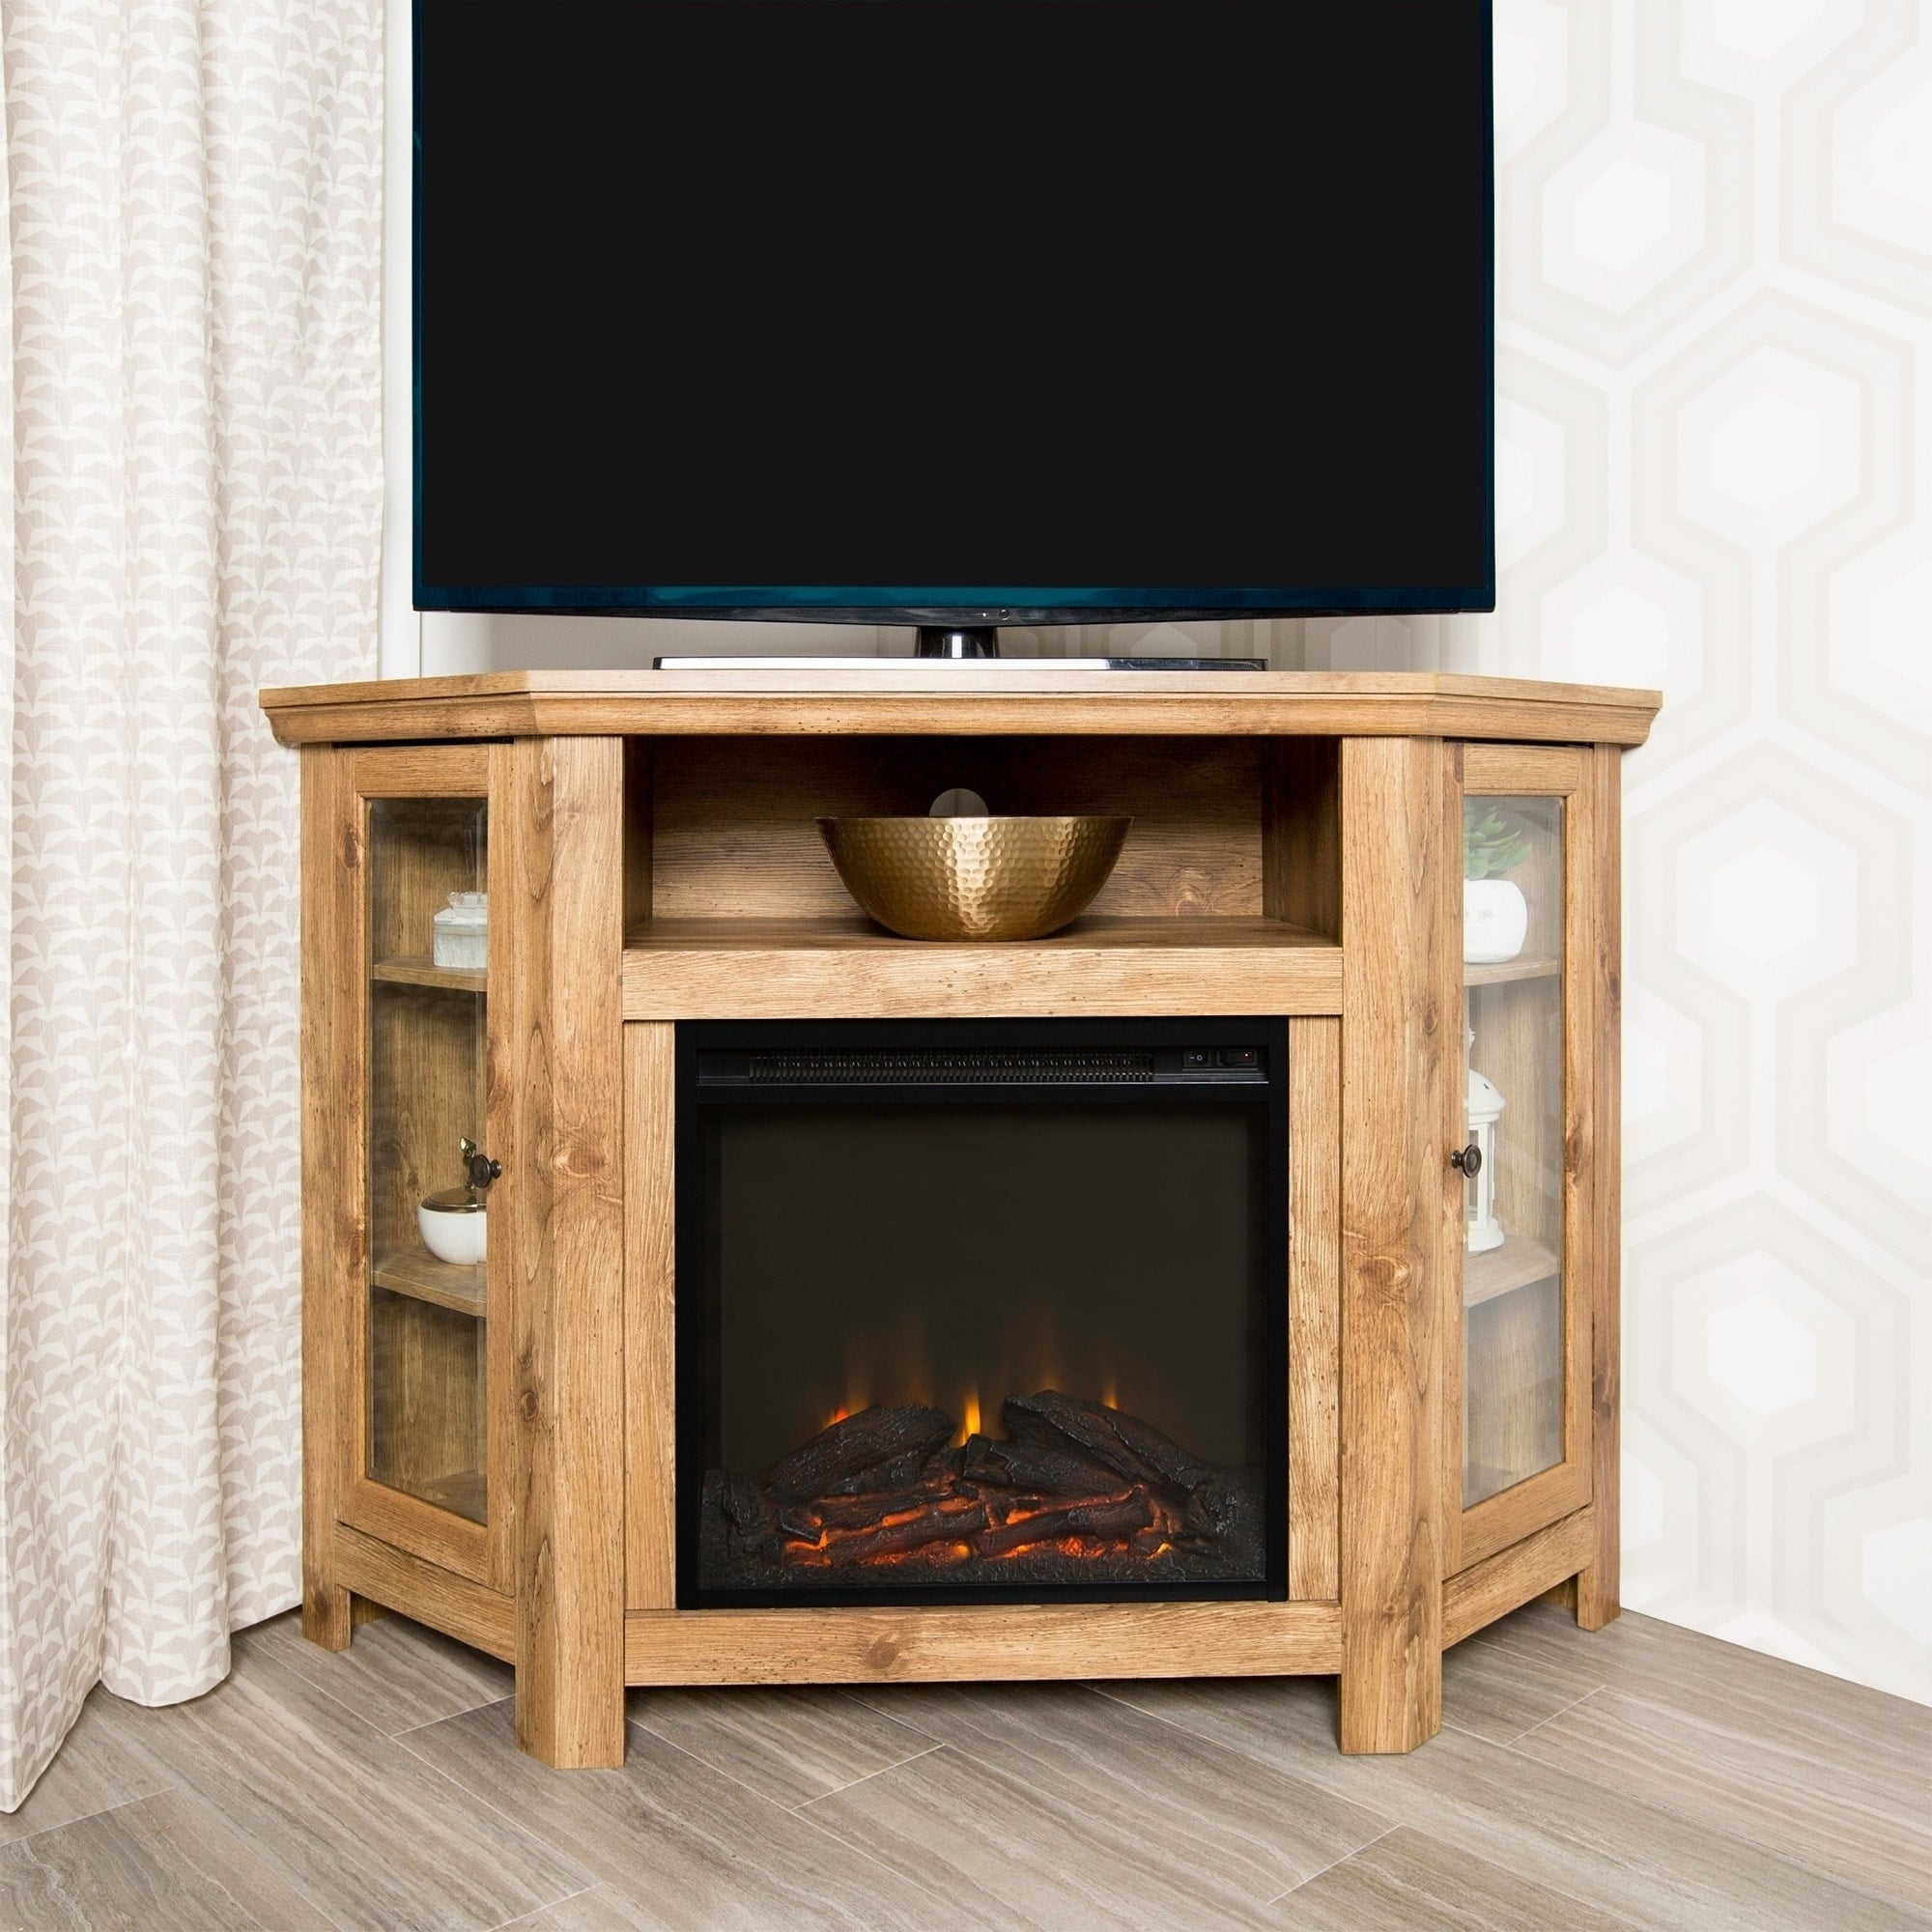 """WE Furniture 48"""" Corner Fireplace TV Stand Console - Barnwood - 48 x 20 x 32h"""